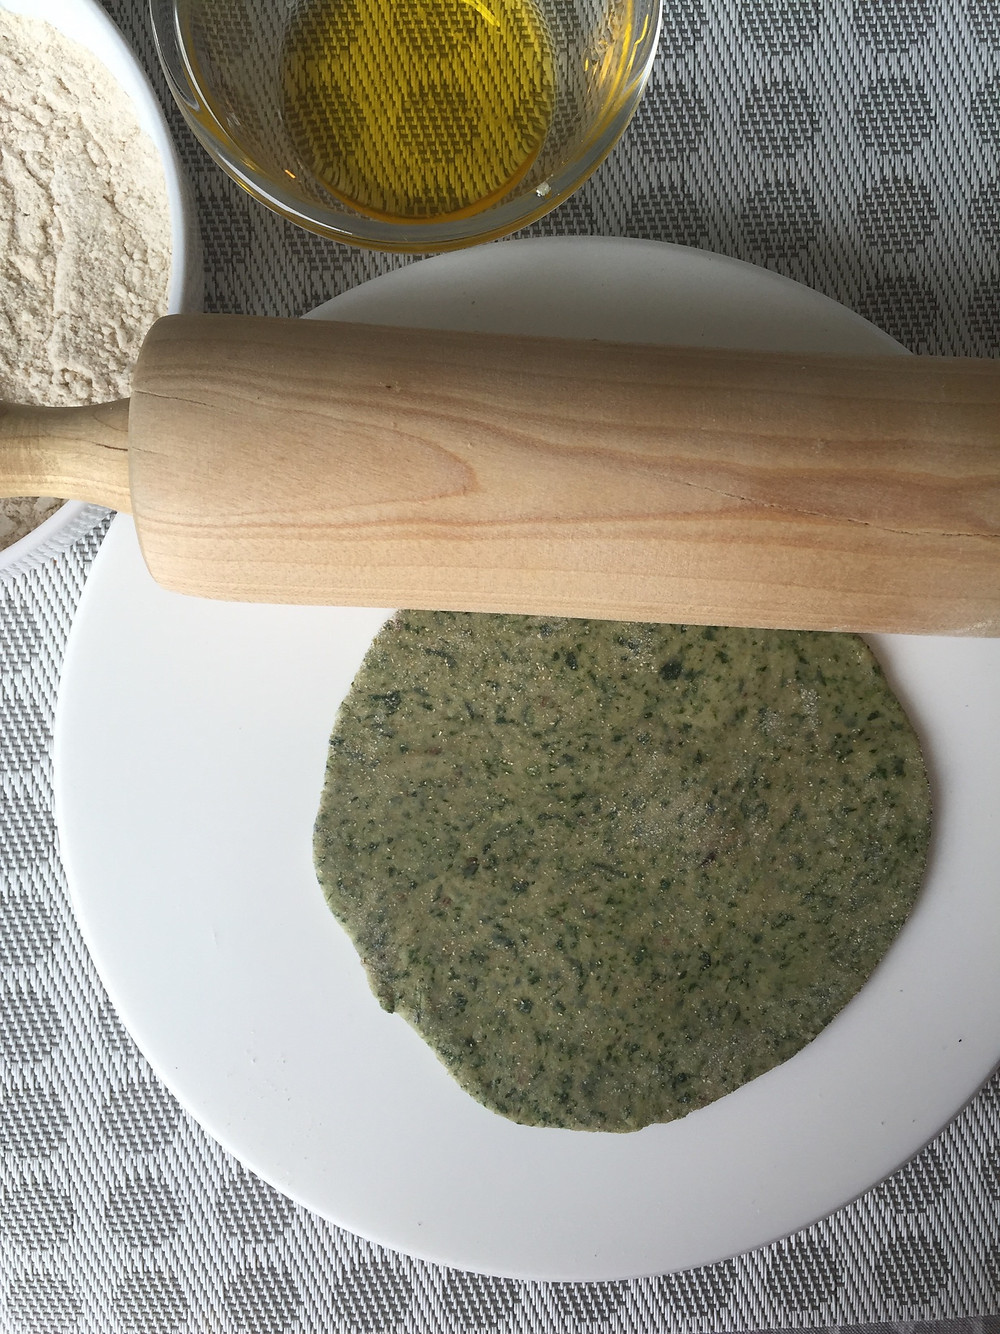 Spinach Paratha, rolled out into a circle